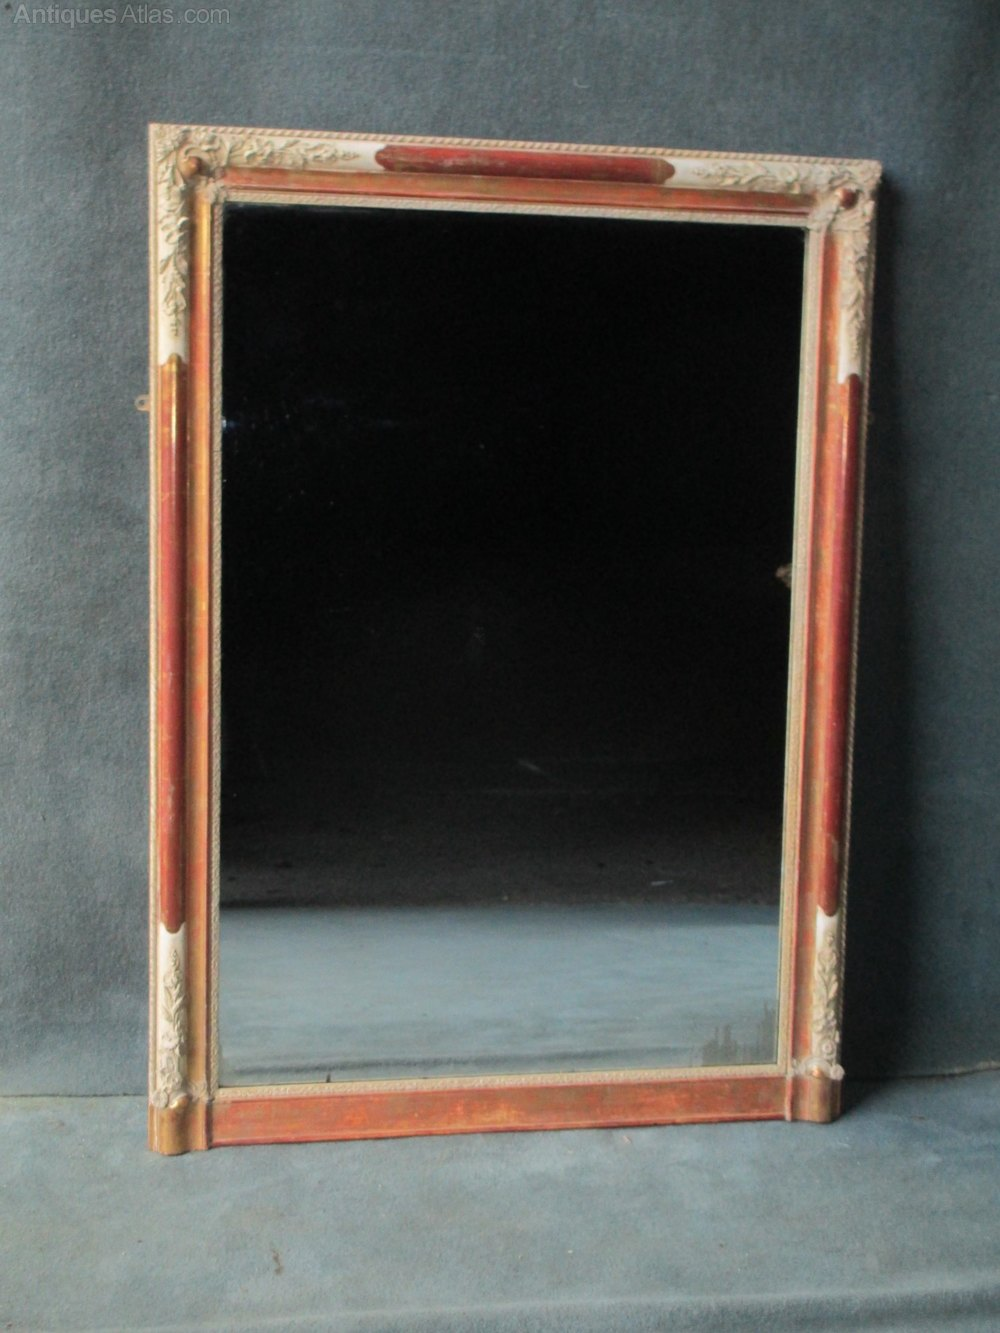 Antiques atlas french portrait overmantle mirror a250 for Overmantle mirror